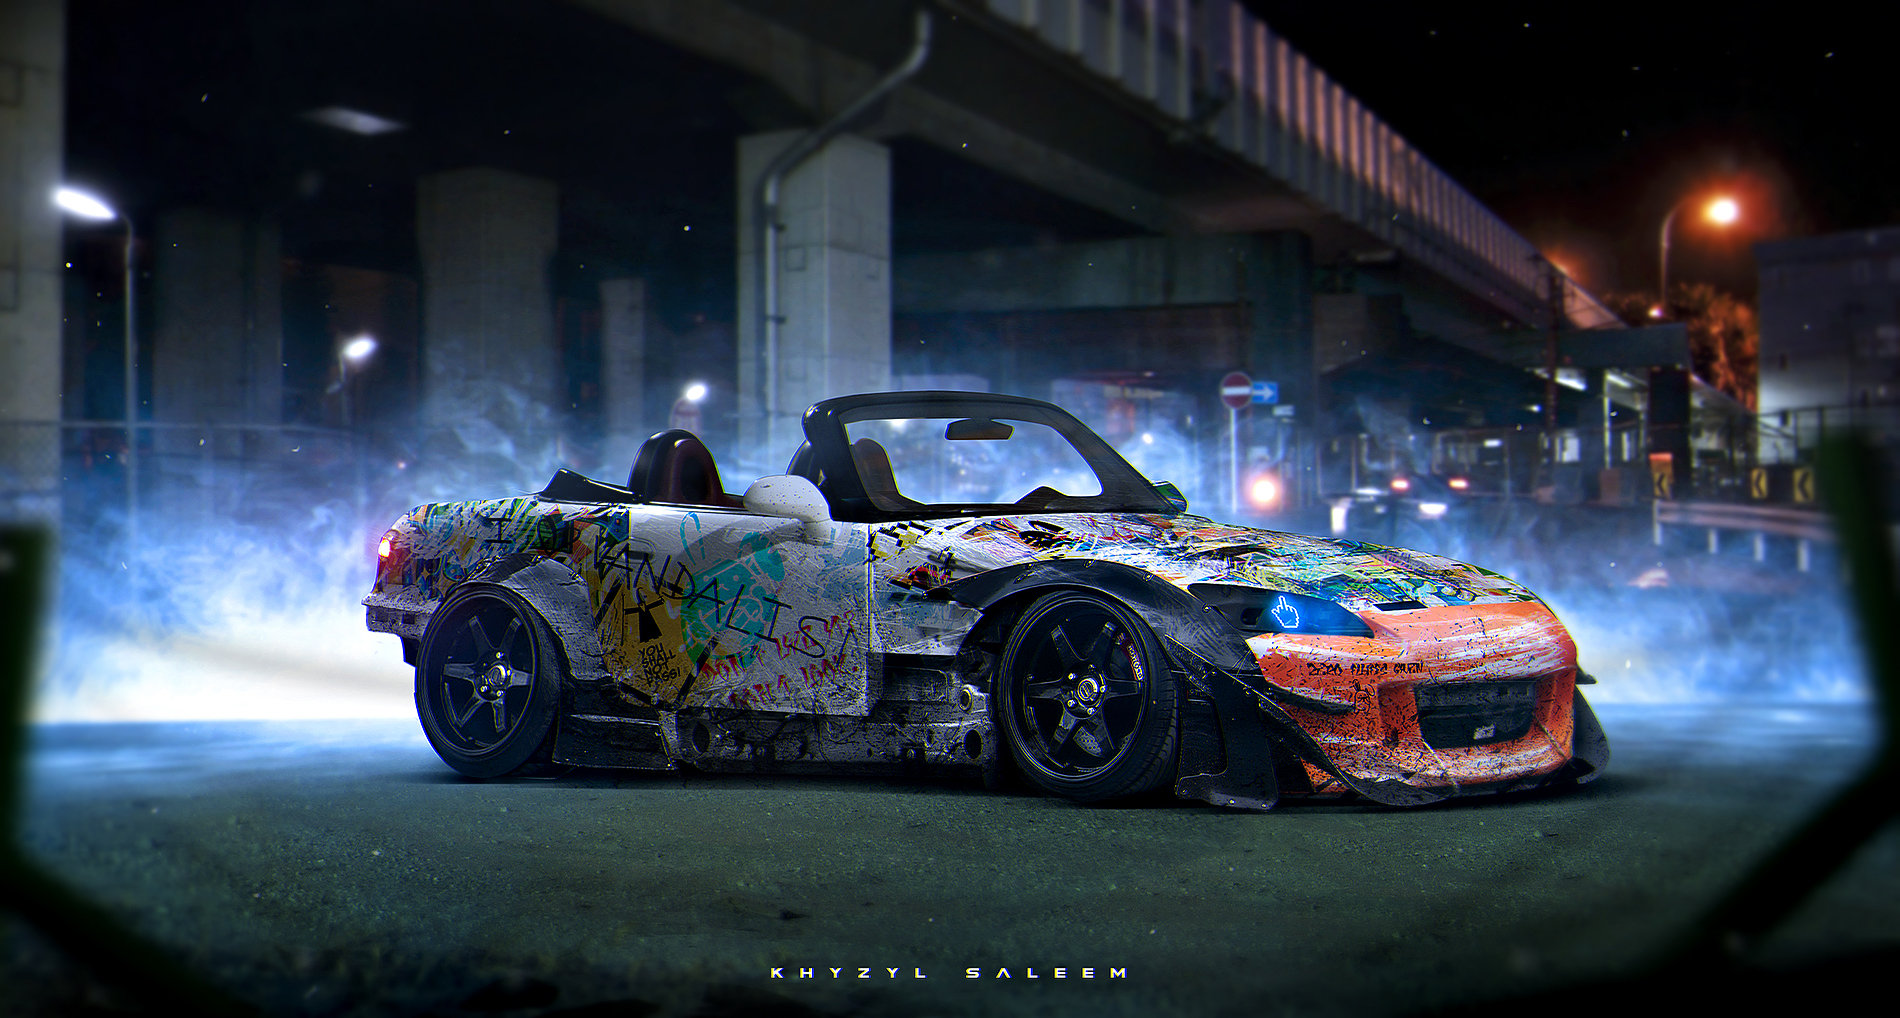 240sx Fairlady >> ArtStation - Zero Fluffs Given, Khyzyl Saleem